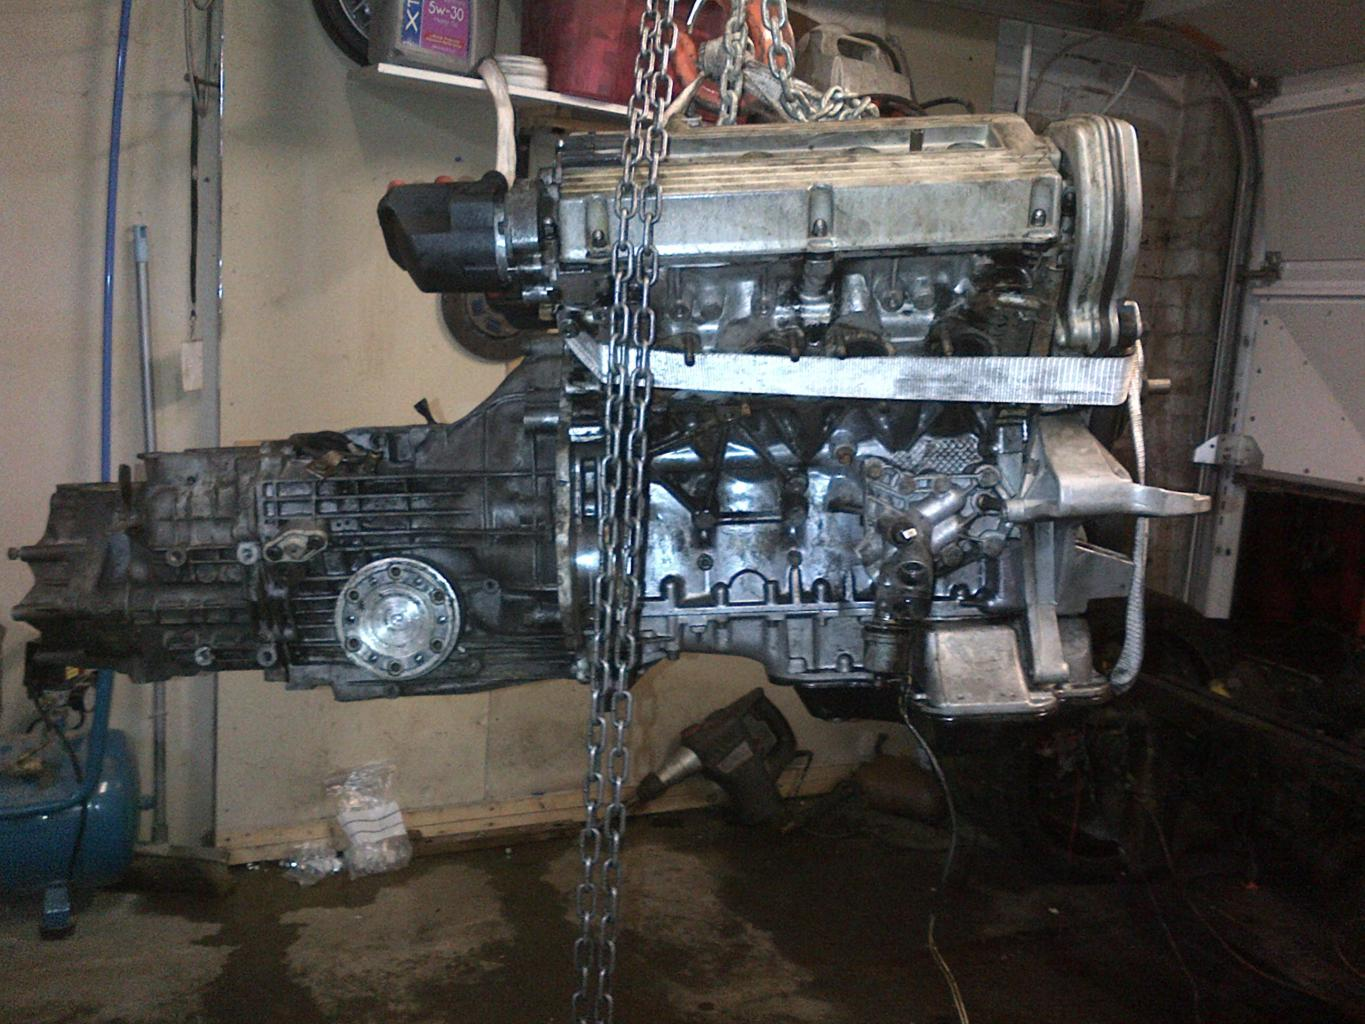 Audi V8 - 012 gearbox-south-bucks-20120926-00161-jpg